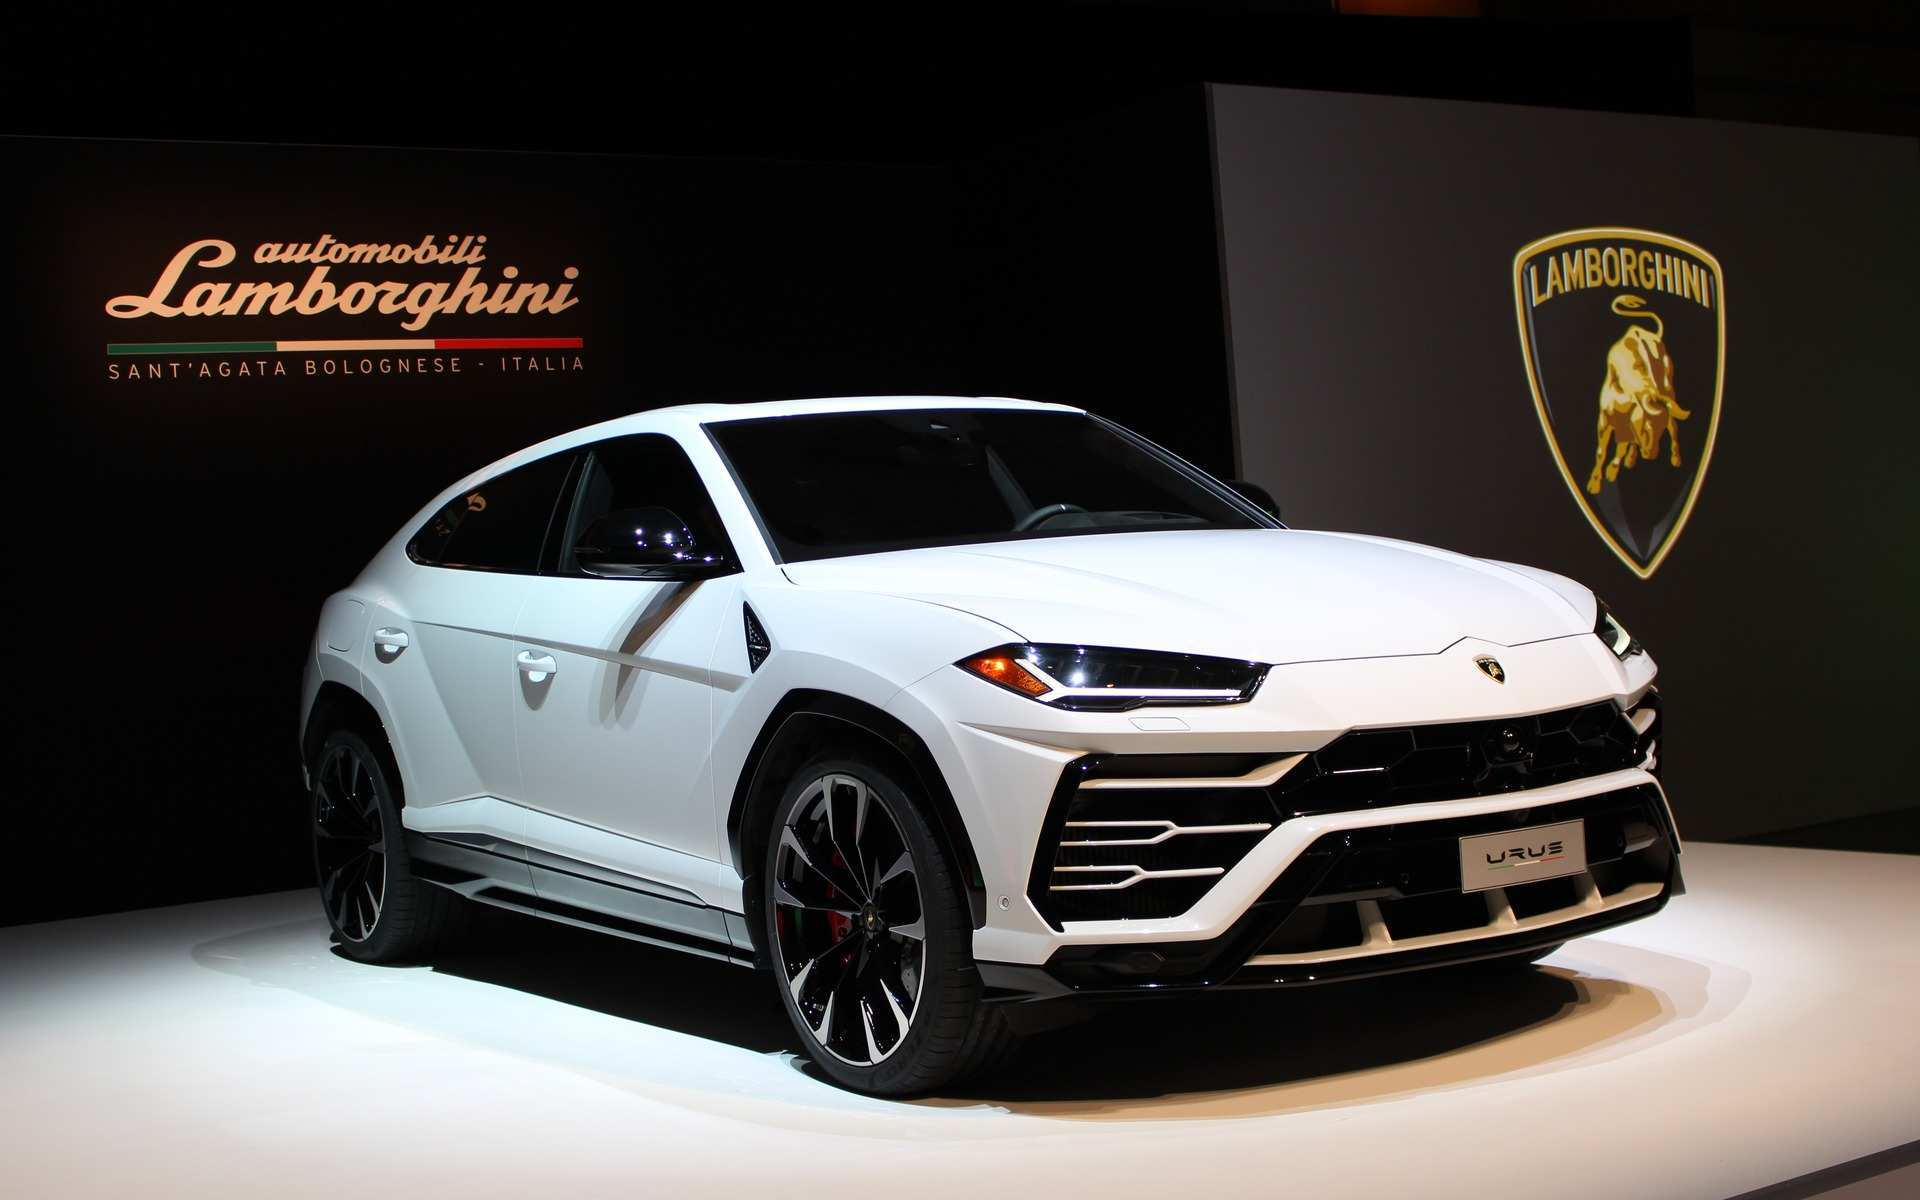 69 All New 2019 Lamborghini Urus Price Reviews for 2019 Lamborghini Urus Price